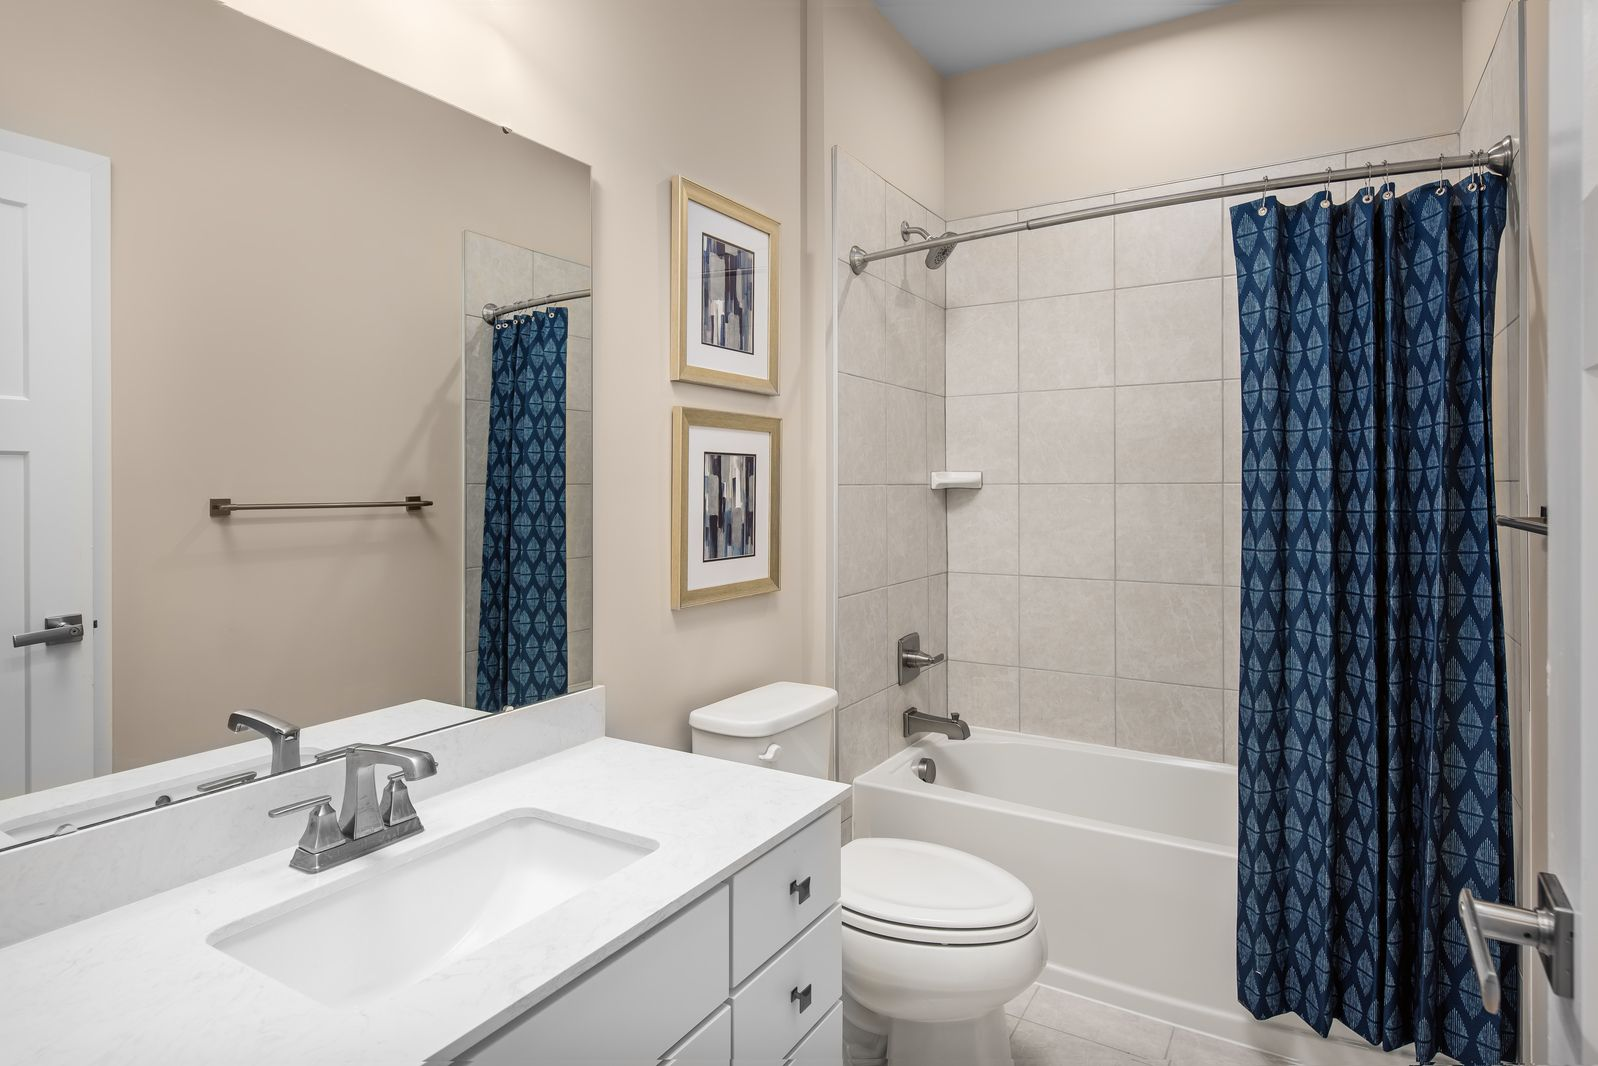 Bathroom featured in the Cumberland By Ryan Homes in Outer Banks, NC